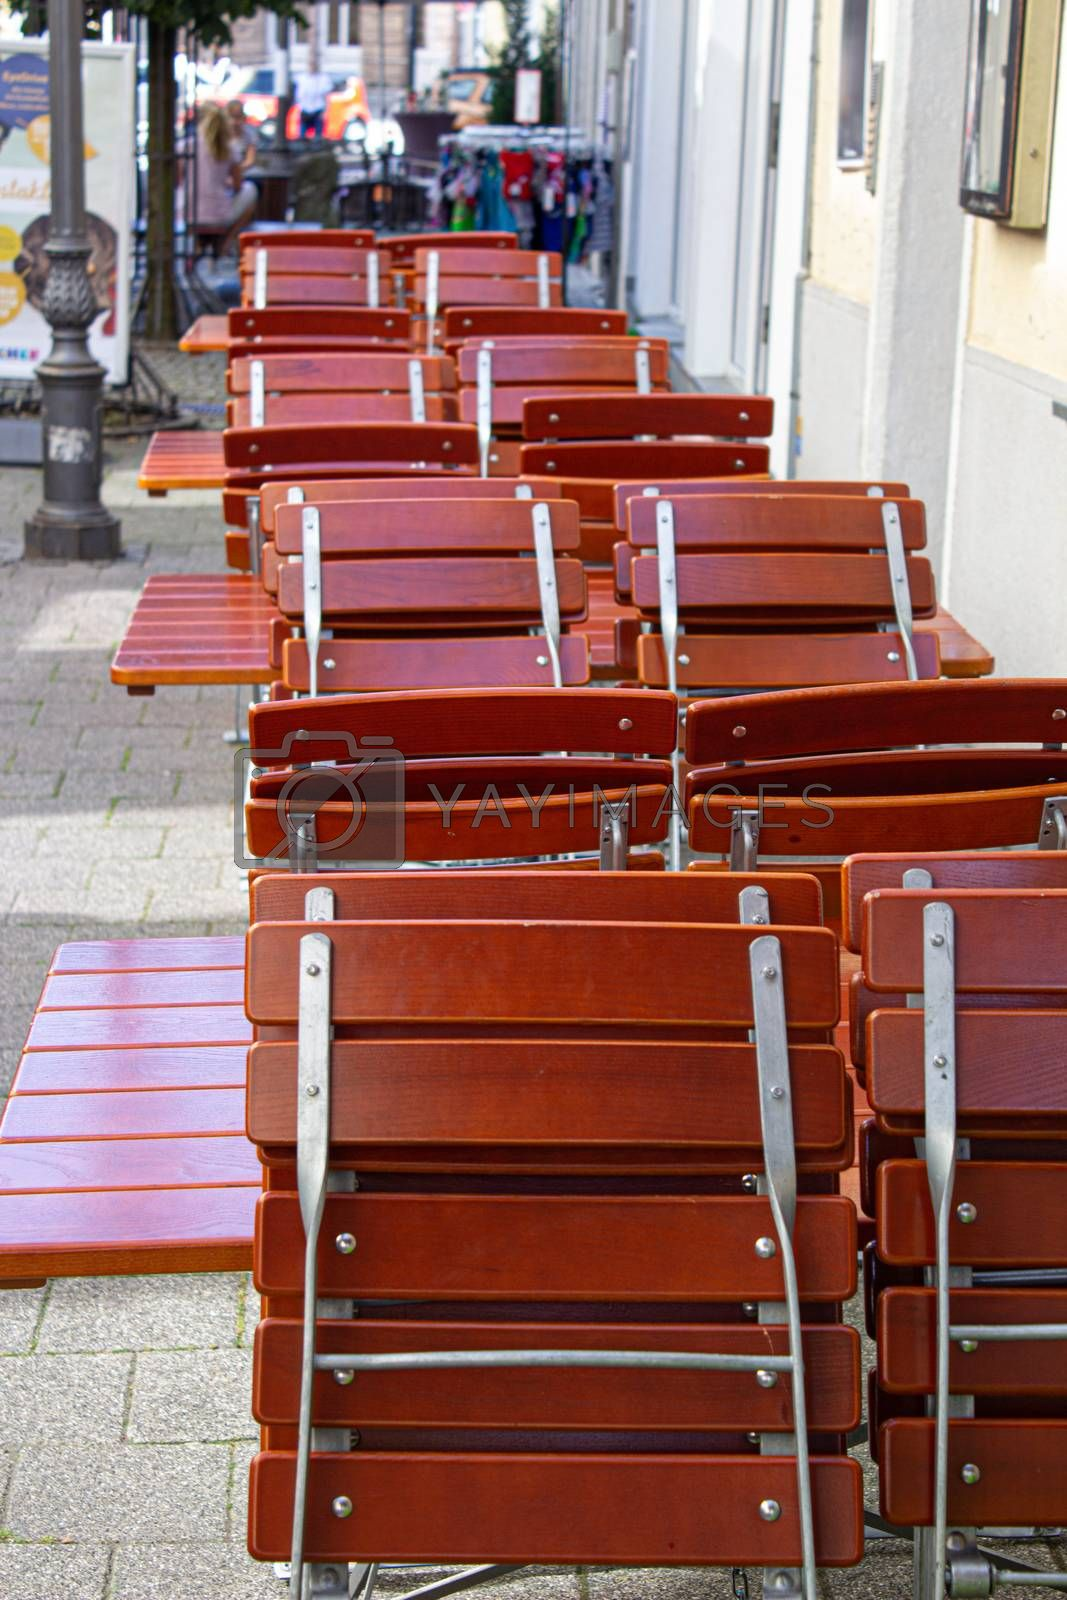 cafe street tables with chairs empty waiting for visitors arranges in structure red.